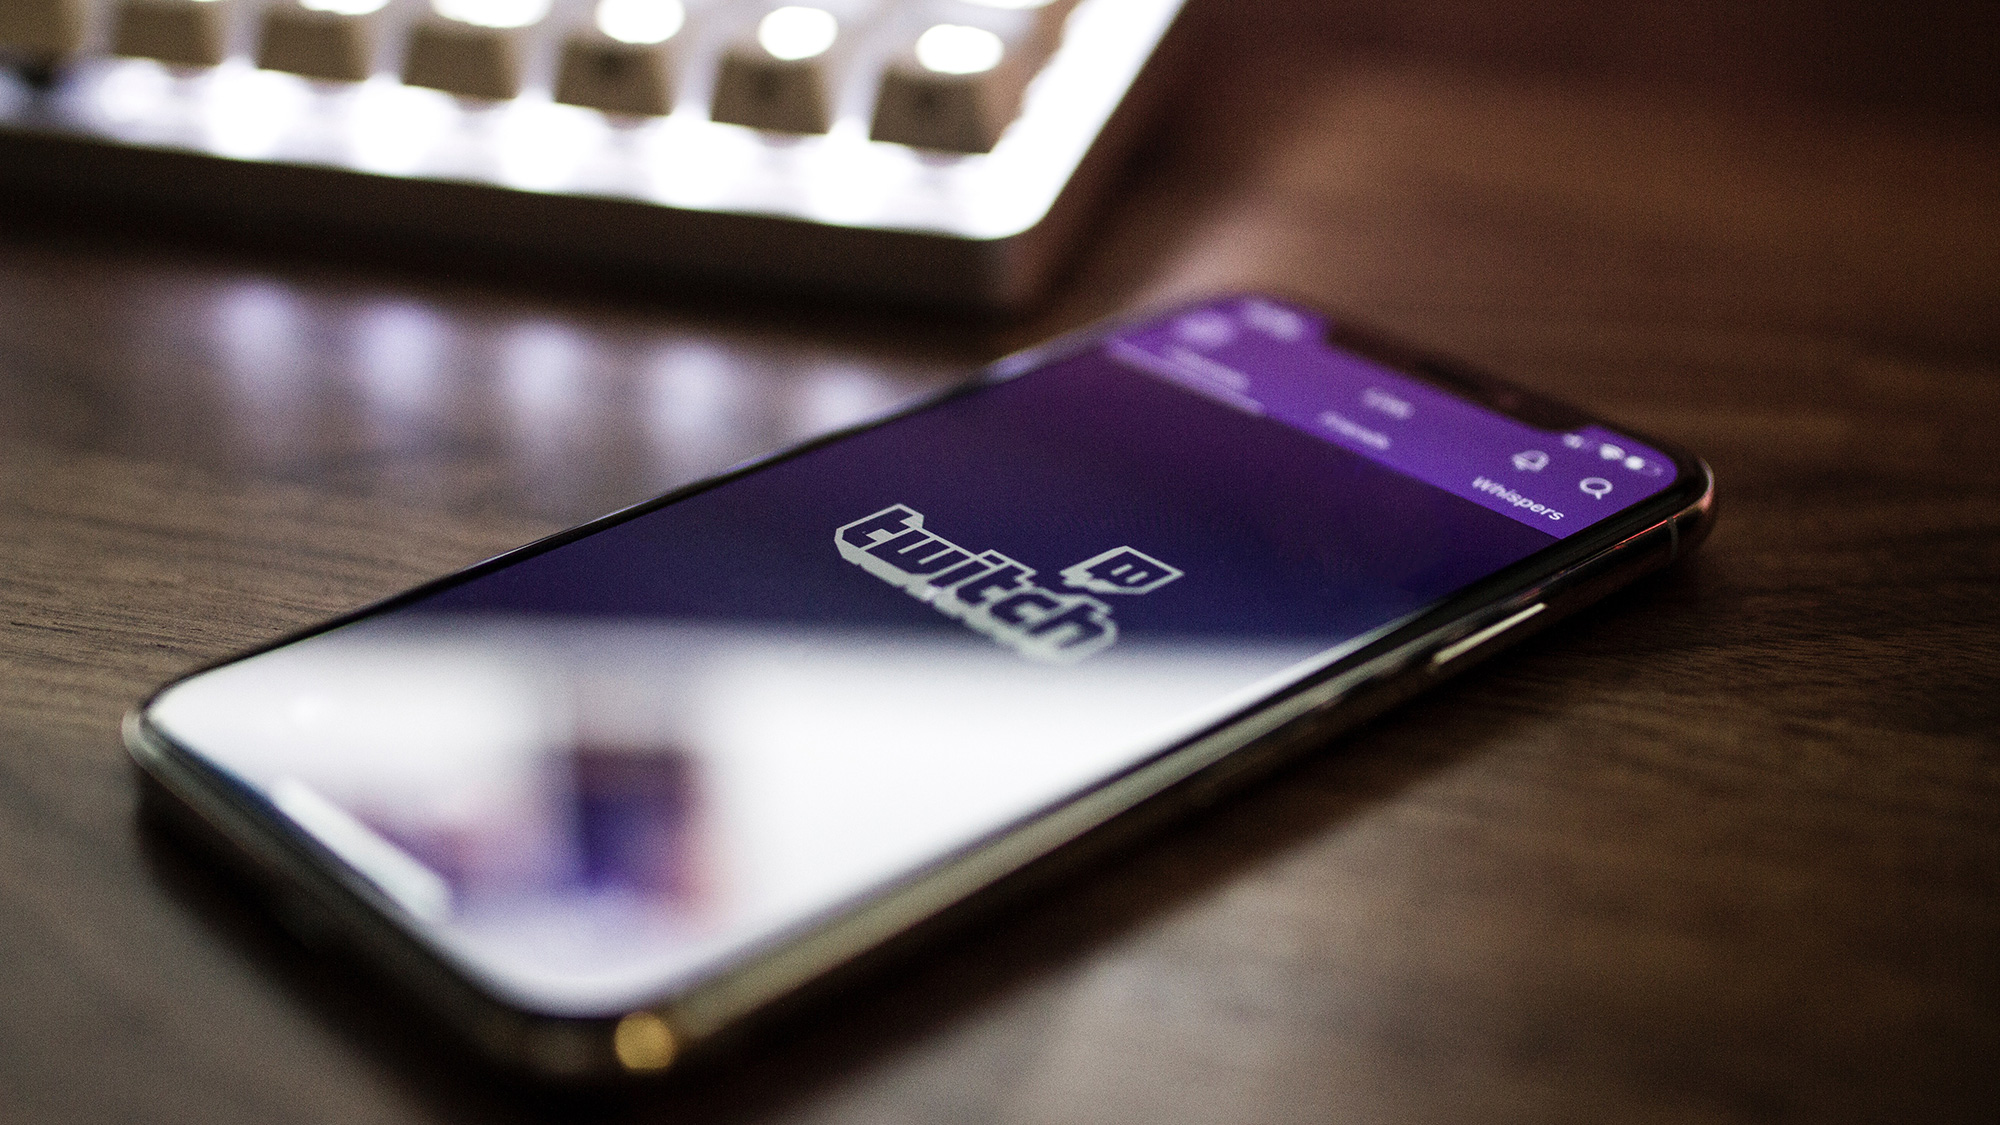 Twitch Mobile App on cell phone